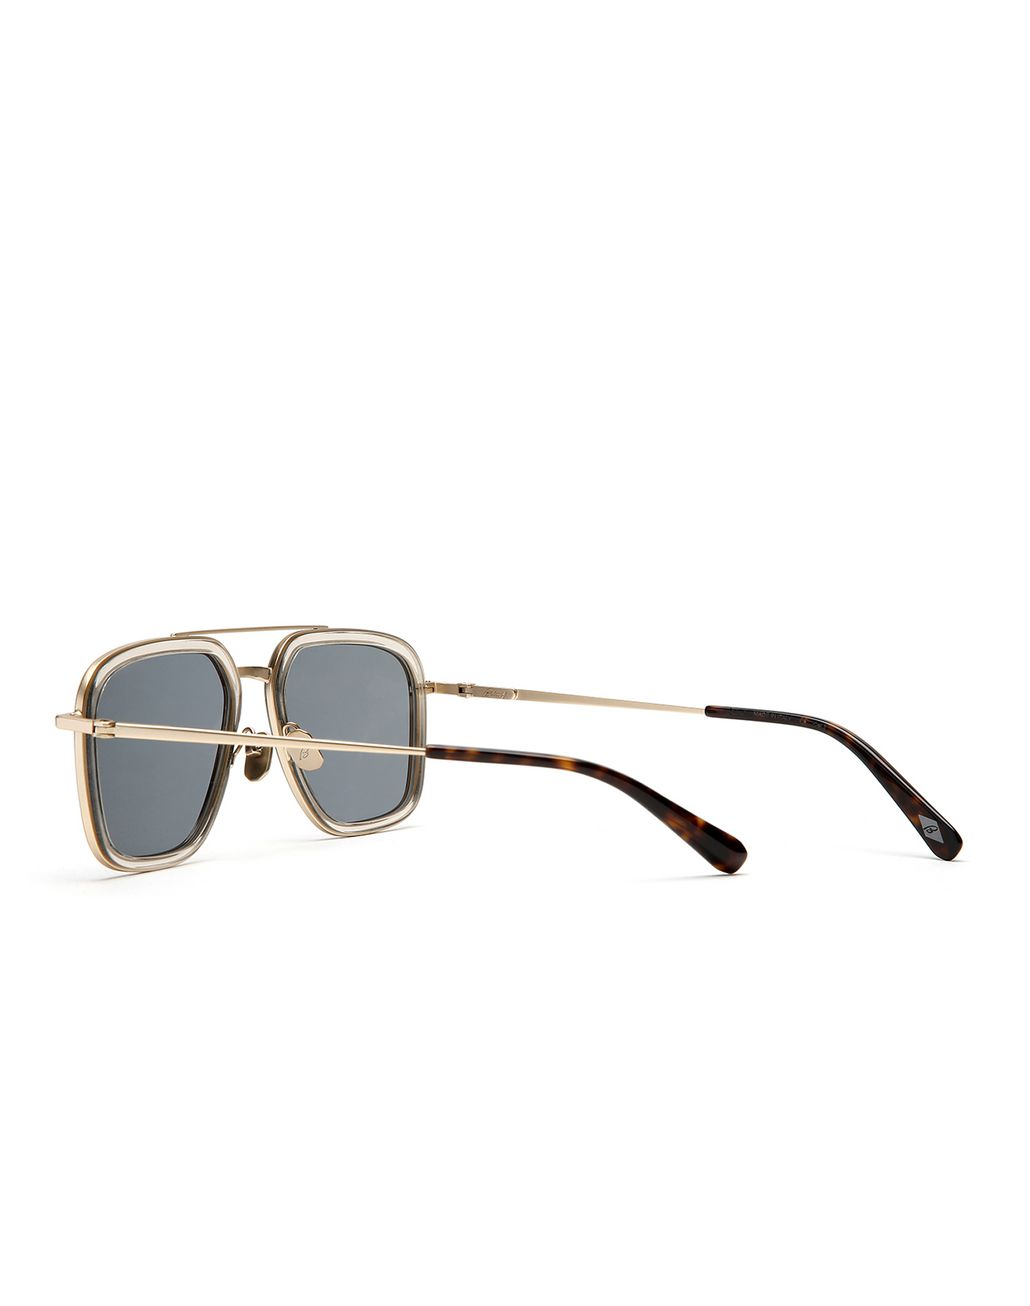 BRIONI Transparent Sand Geometric Shape Sunglasses with Green Lenses  Sunglasses Man d